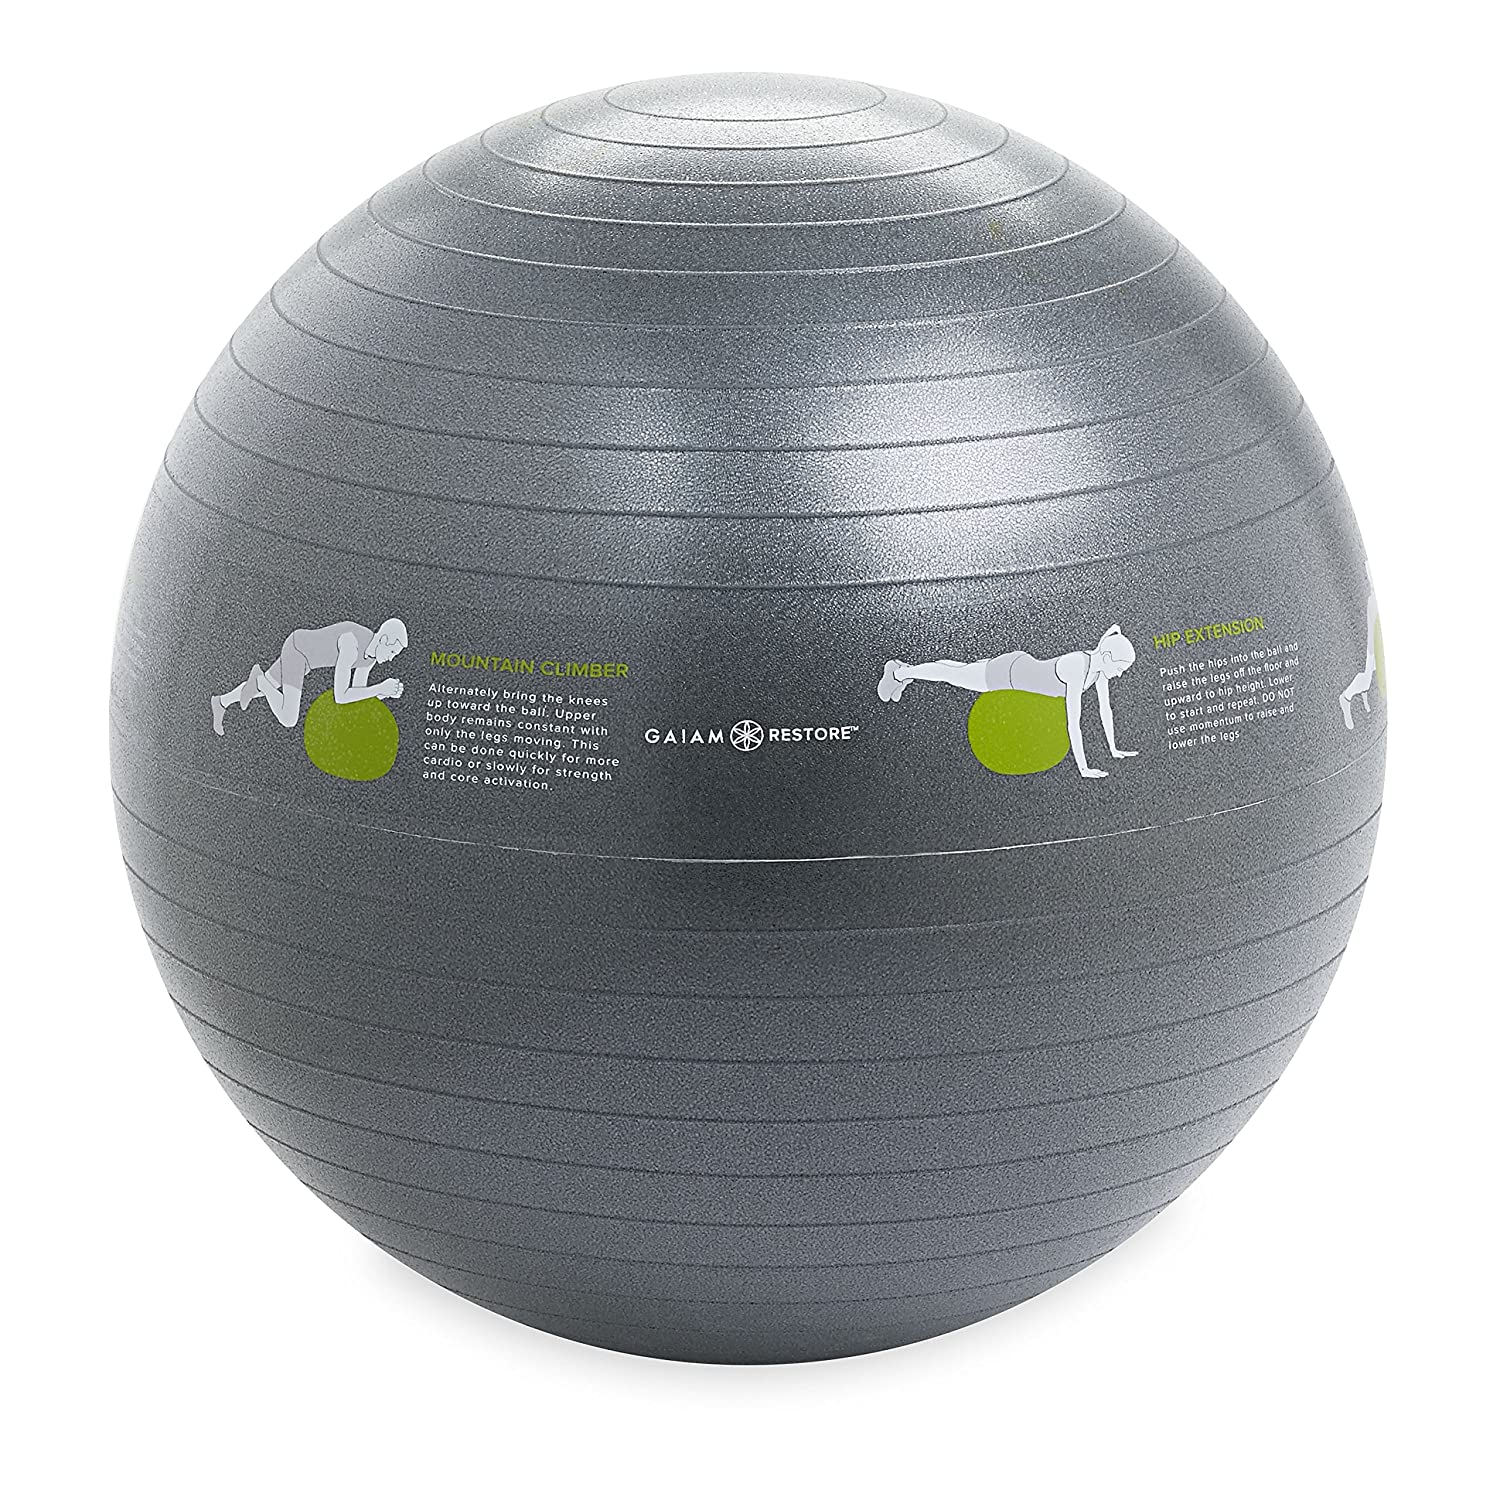 Gaiam Restore Balance Ball Self-Guided Stability Ball with Exercise Guide Instructions Printed on Yoga Ball, 65cm